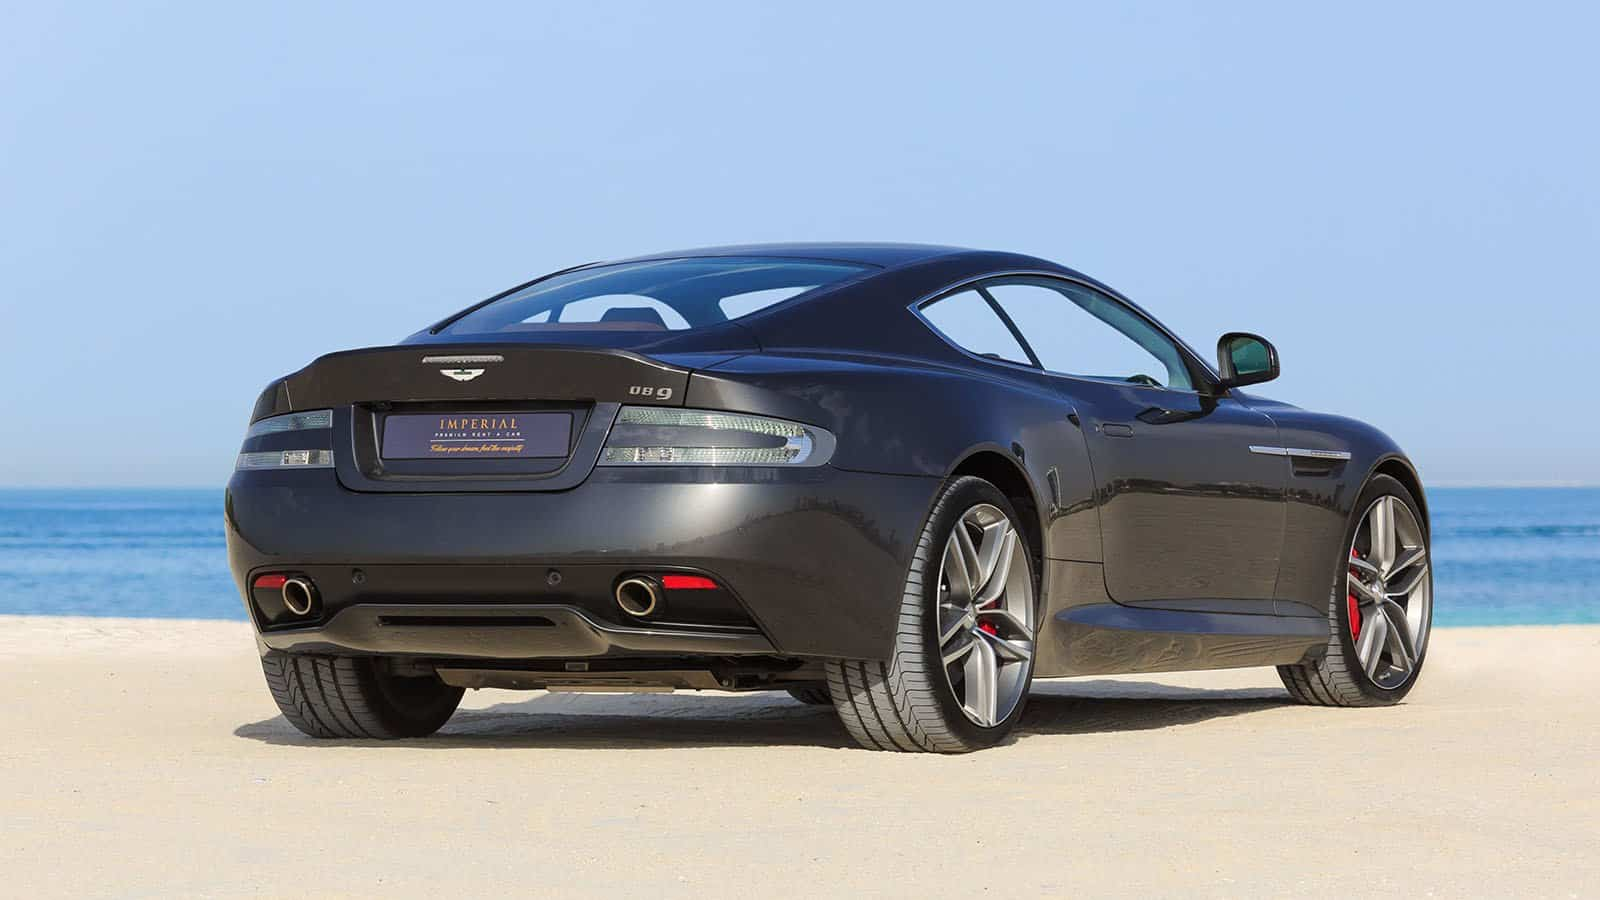 Rent Aston Martin DB9 Car in UAE